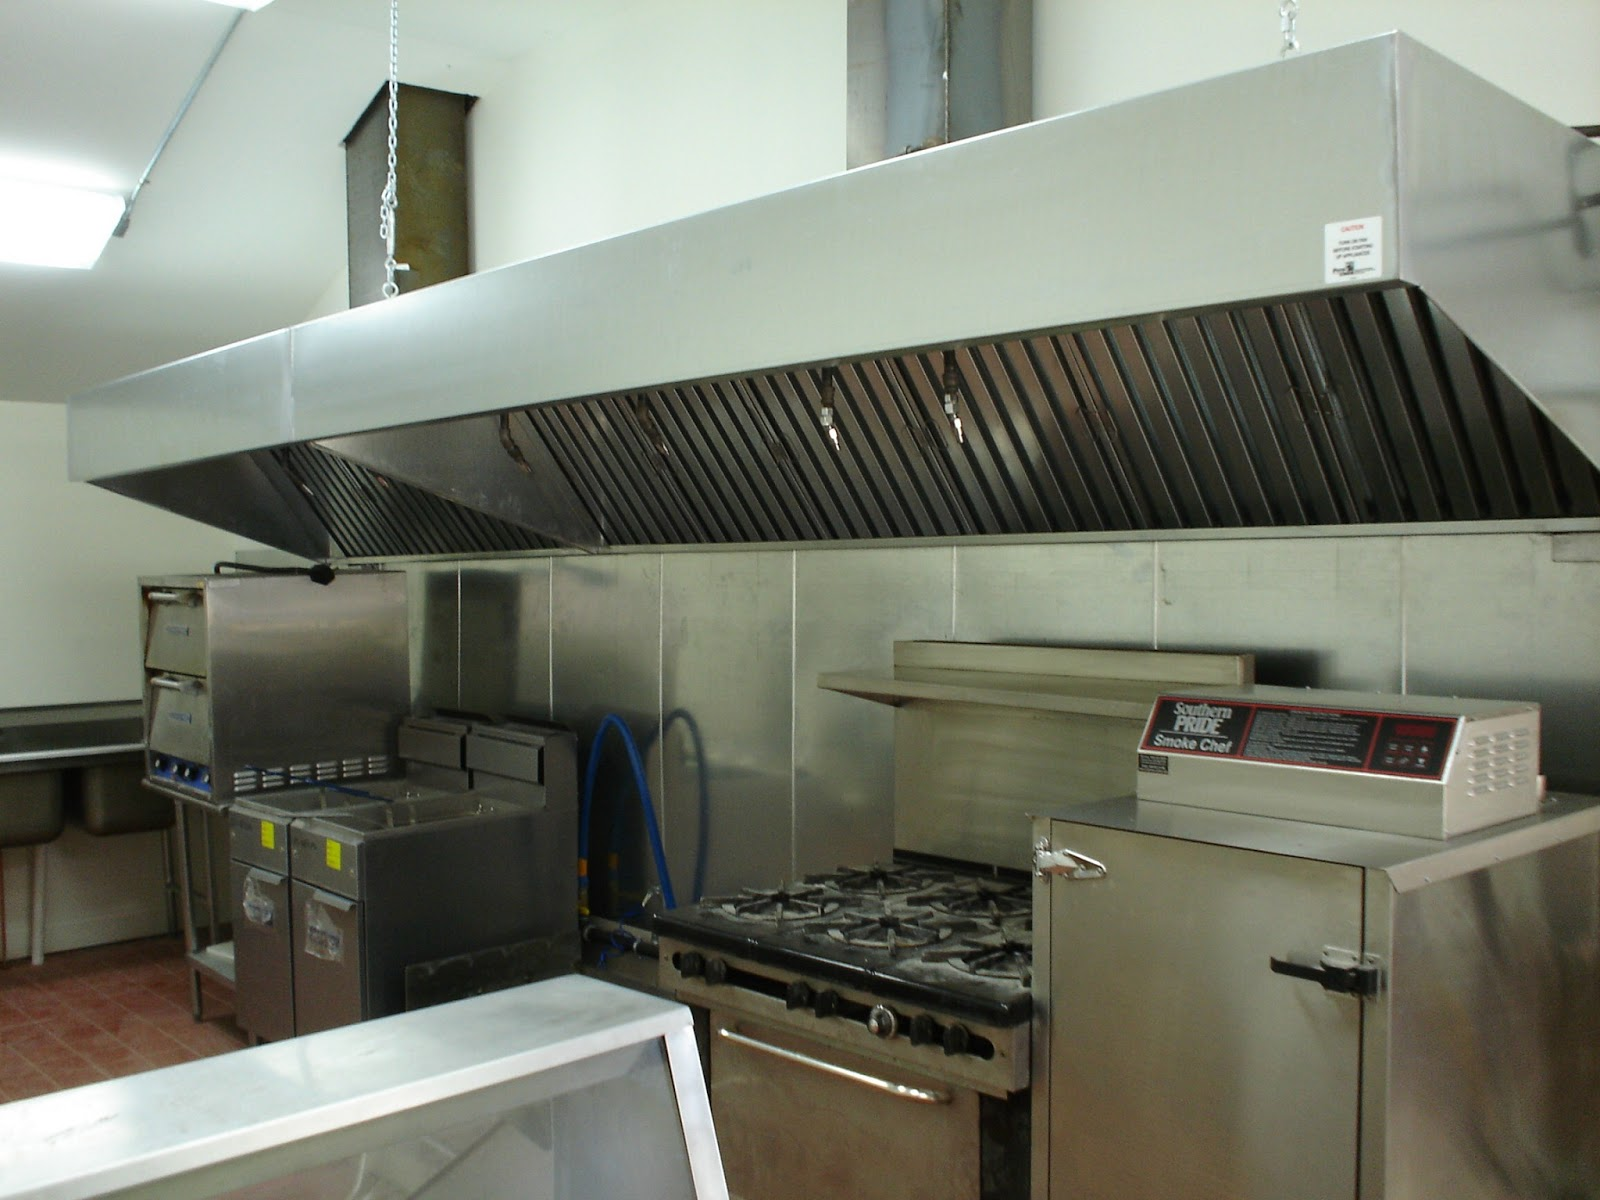 Restaurant hood cleaning service austin tx regarding